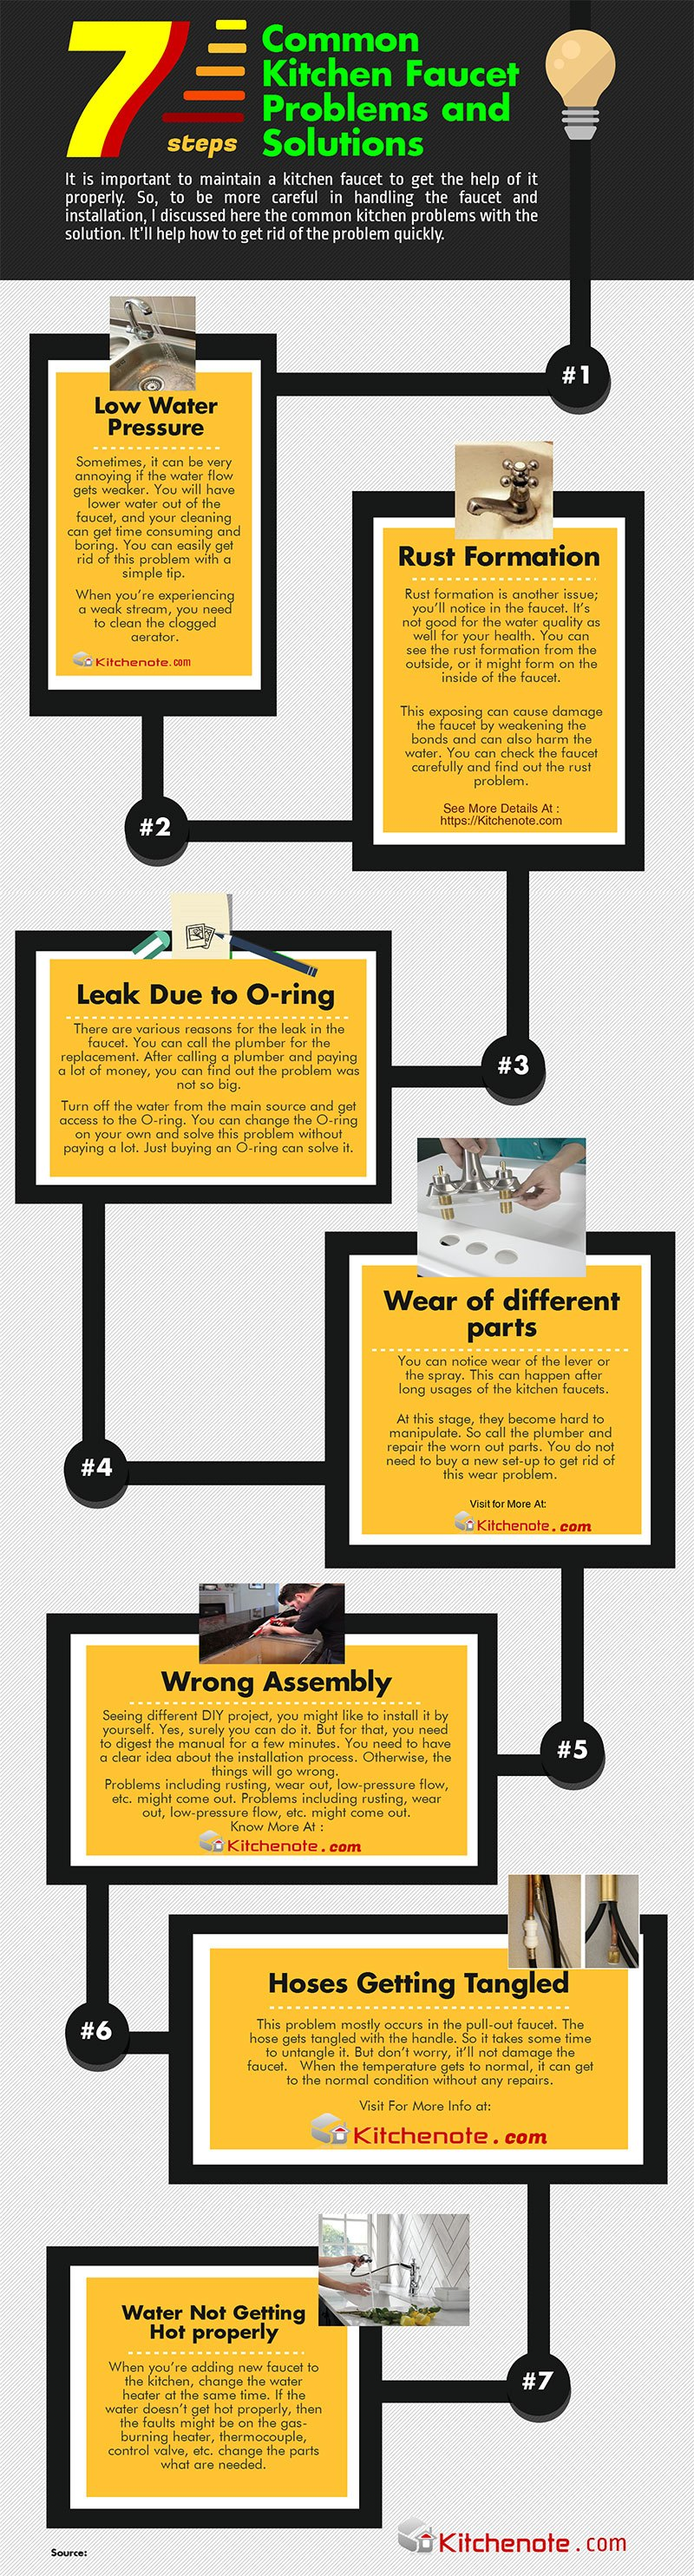 Common kitchen faucet problems and solutions infographics